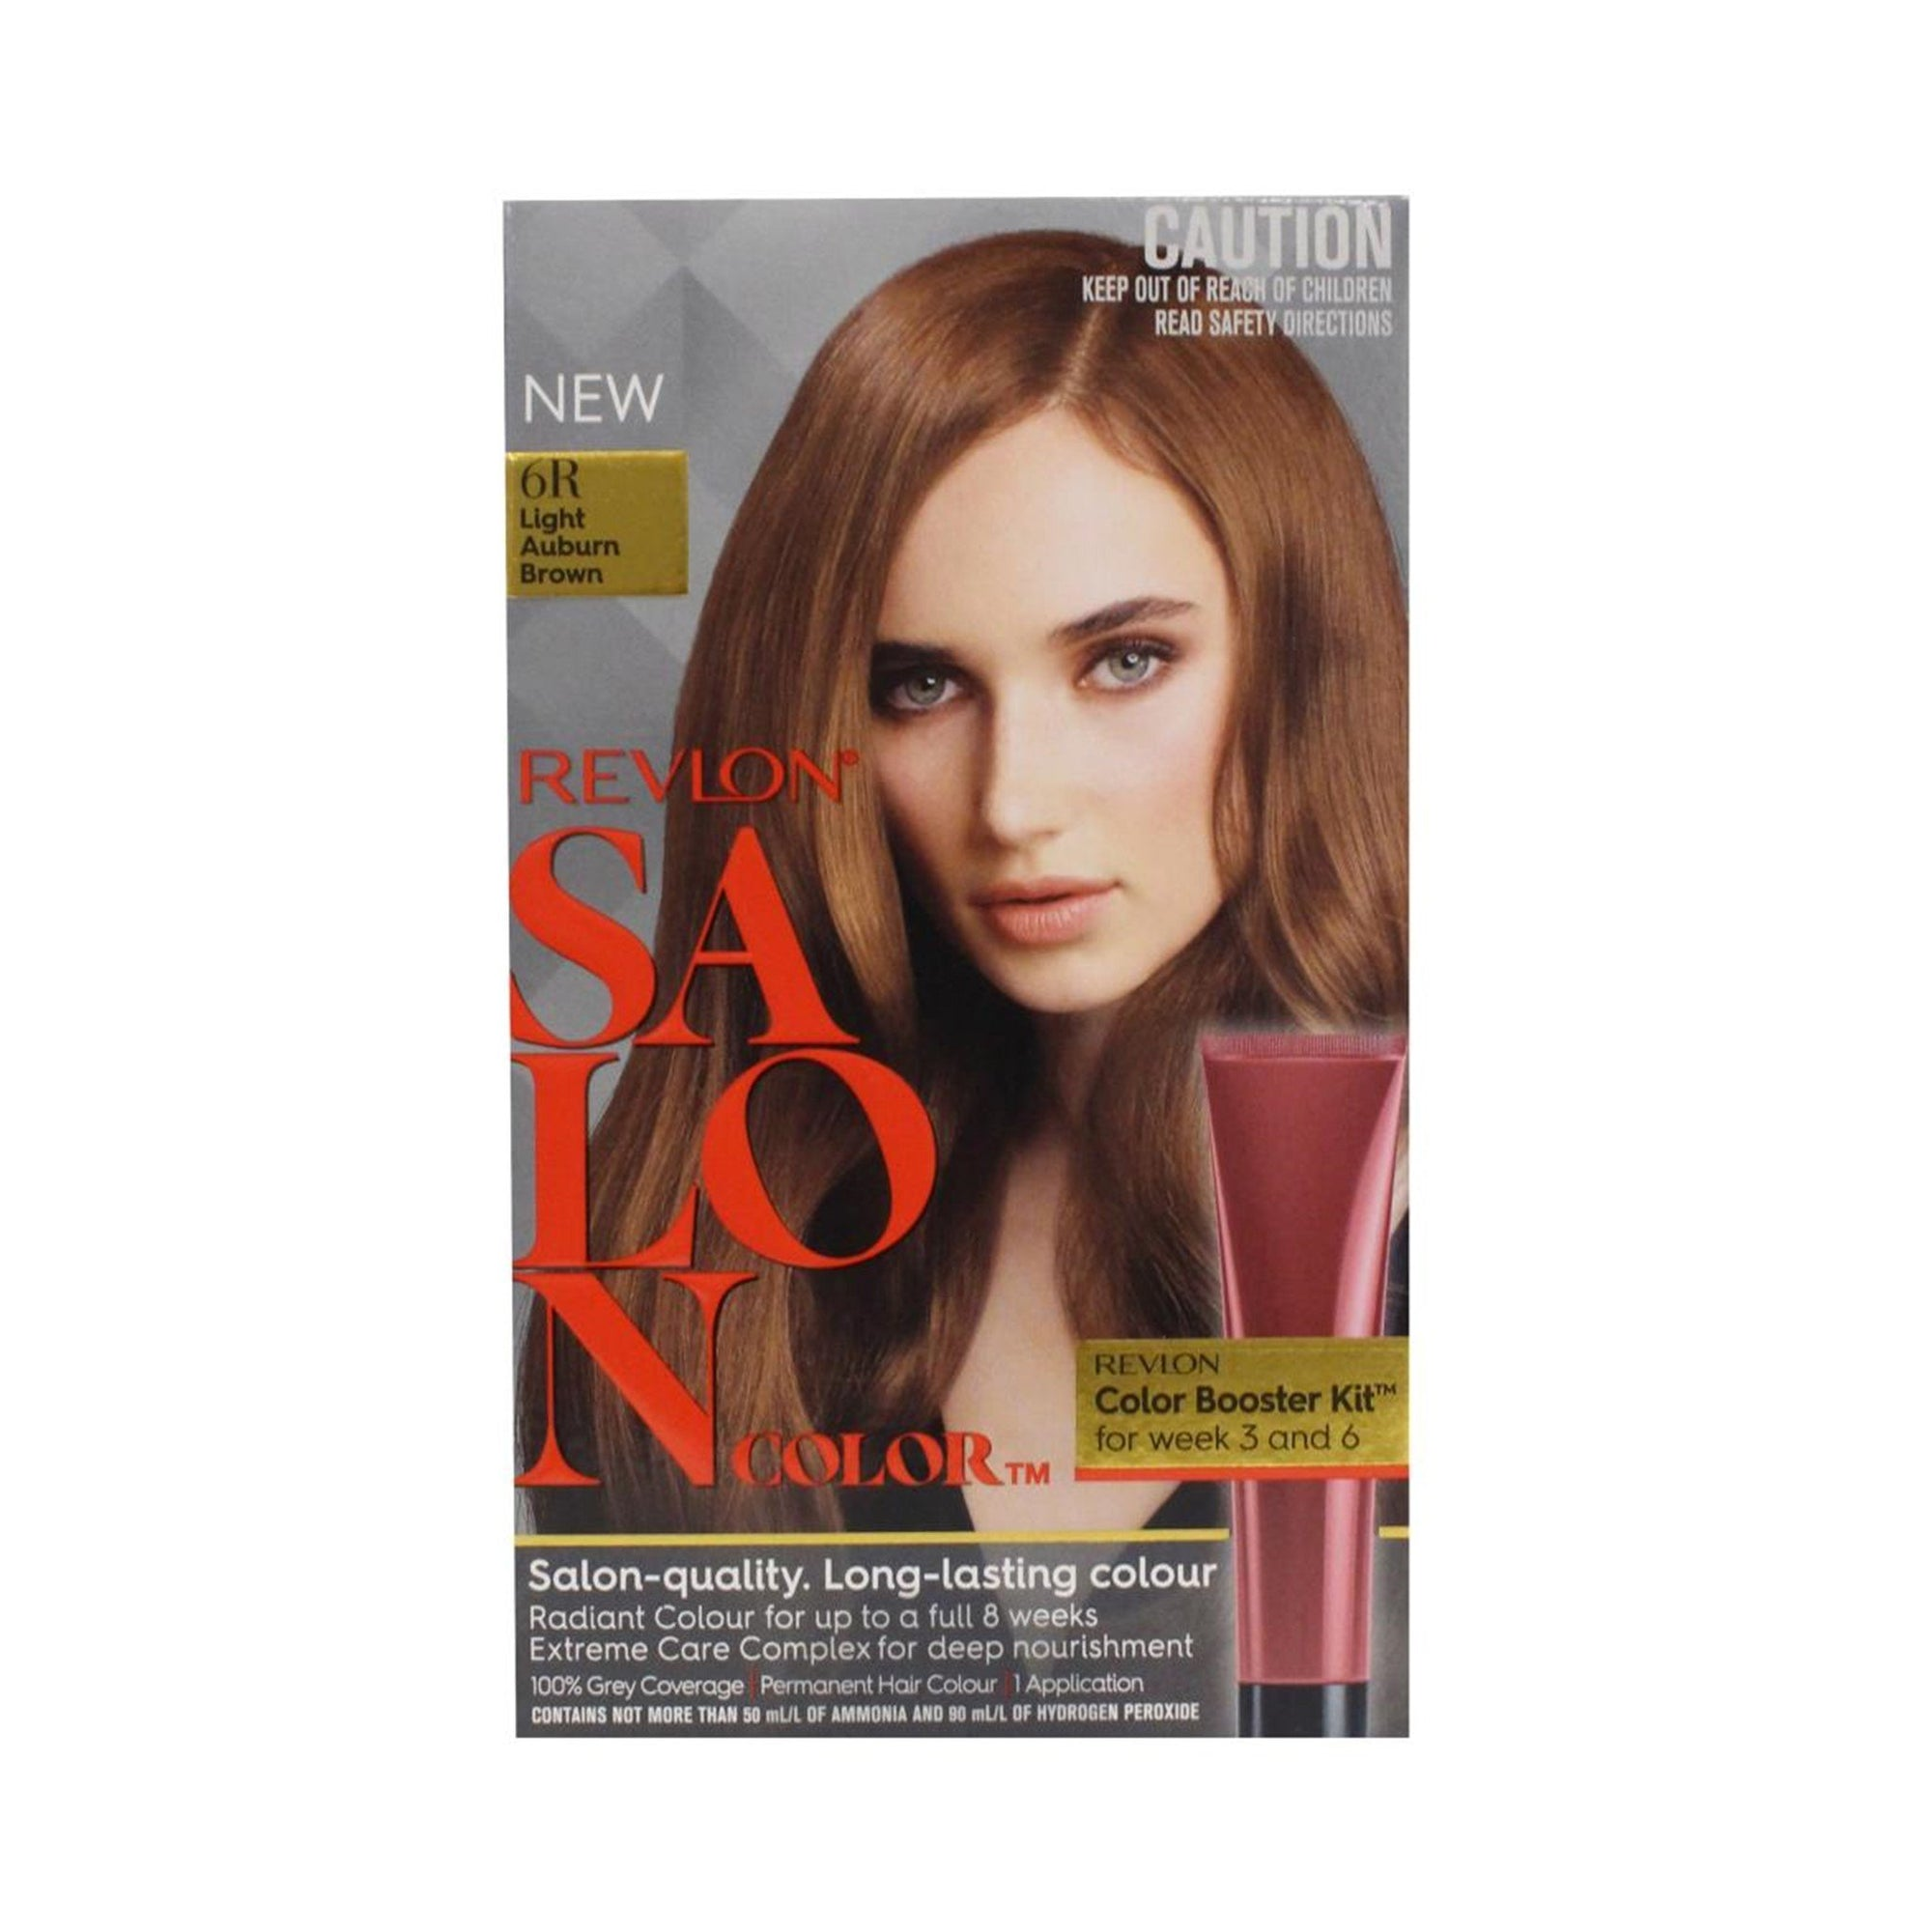 Revlon Salon Hair Color #6T Light Auburn Brown